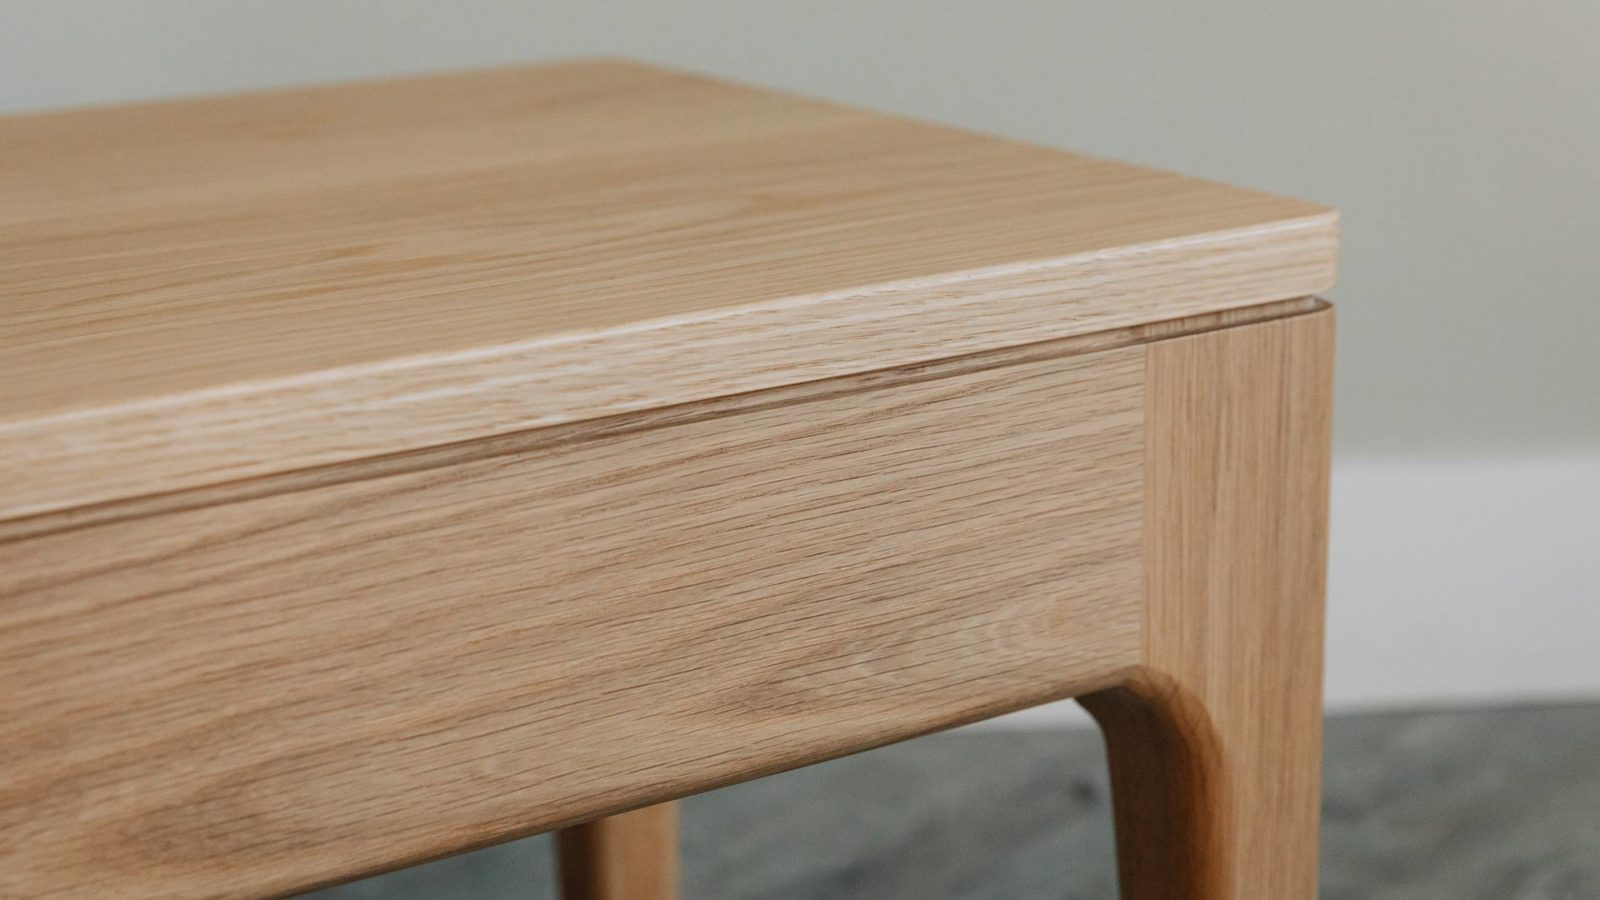 Hand crafted Camden wooden side table in oak - a detail view